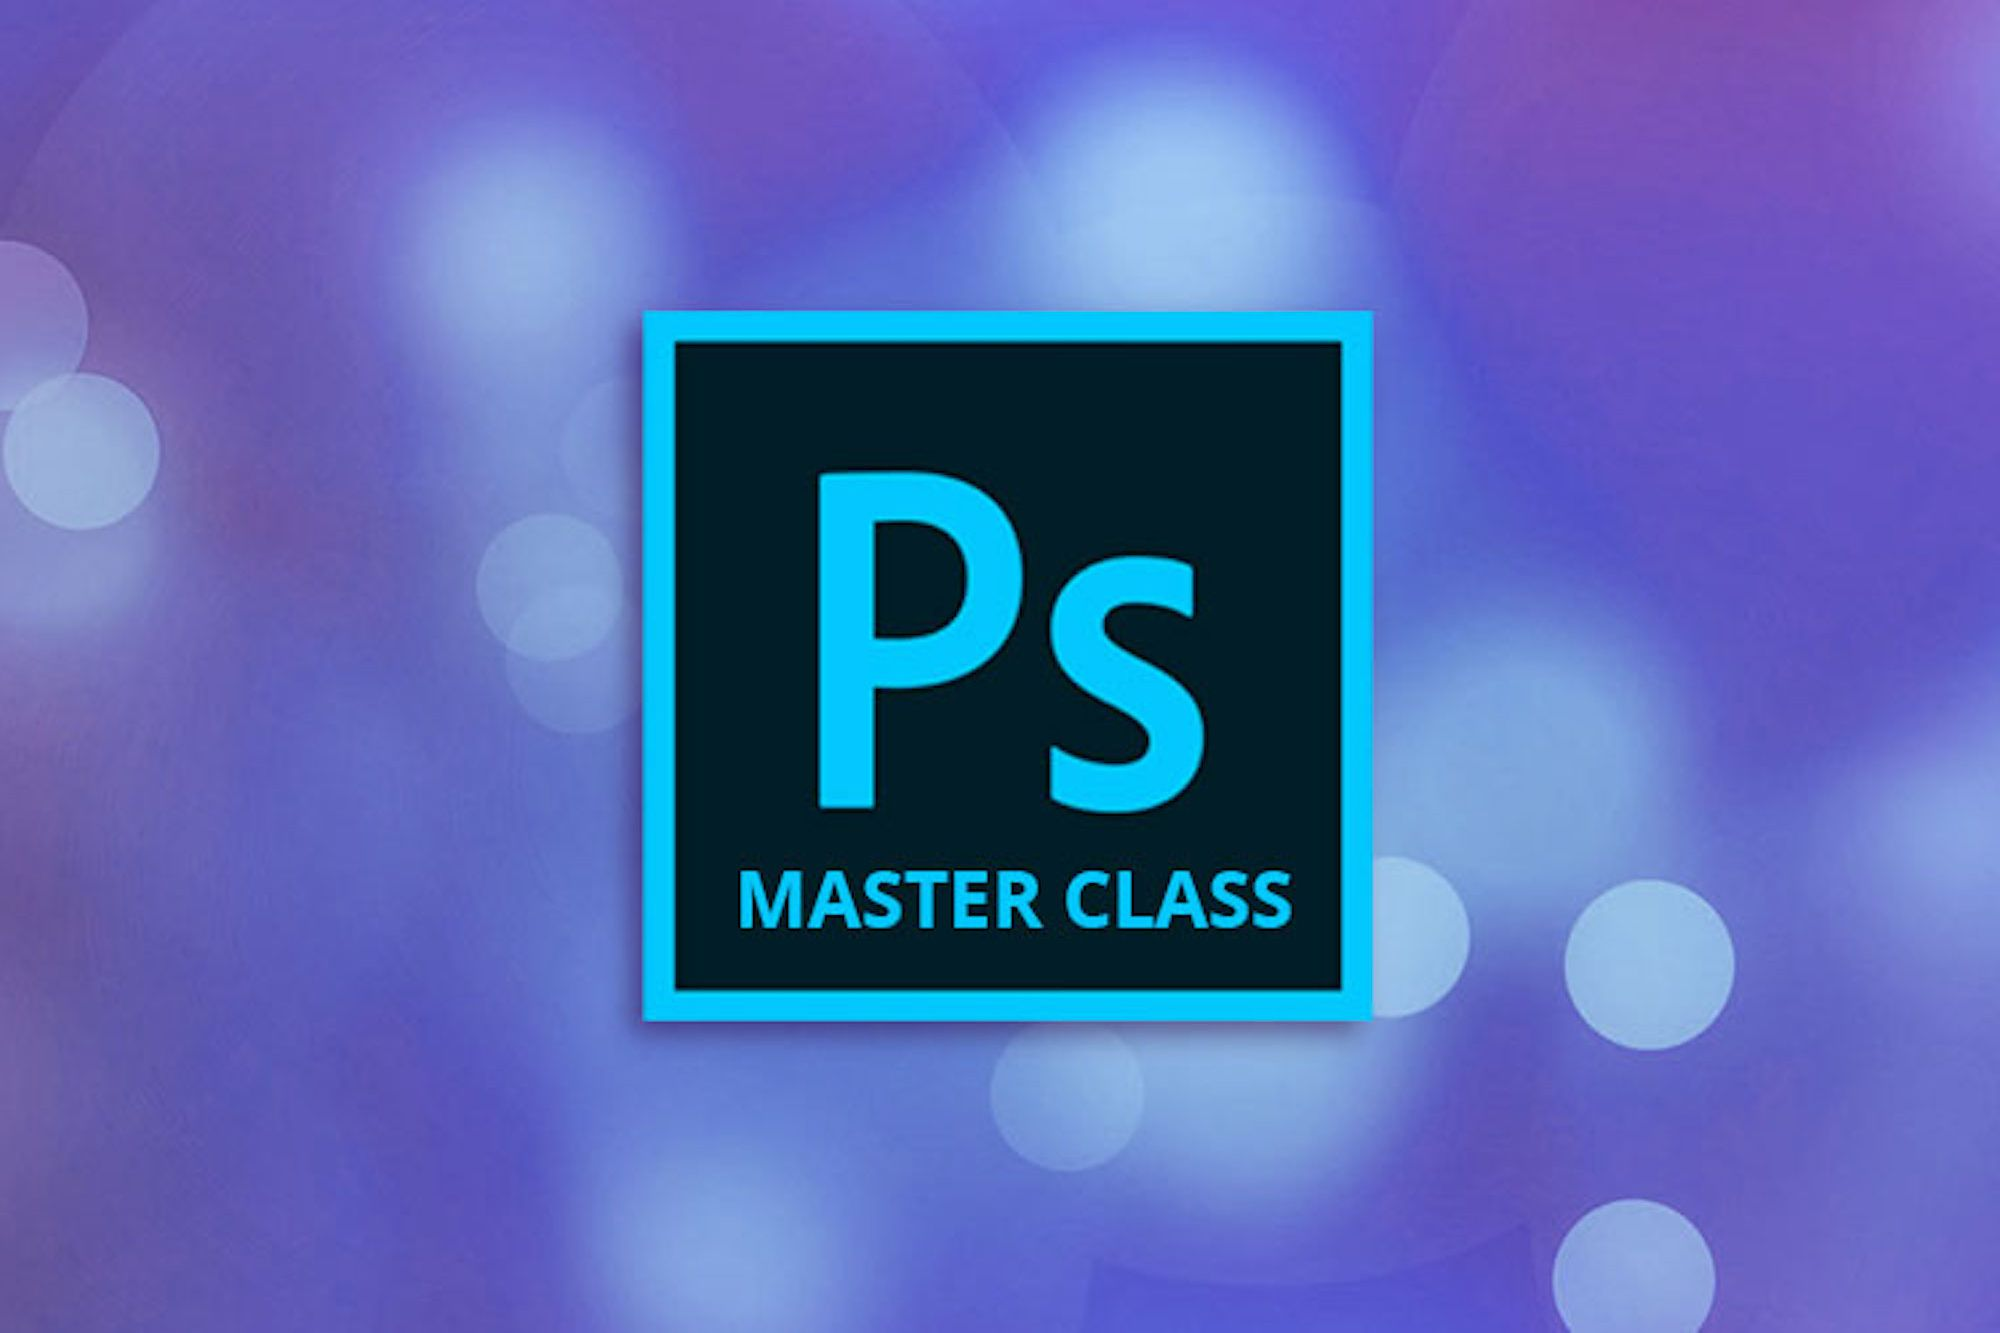 Add Photoshop to Your List of Skills and Reach for a Creative Career